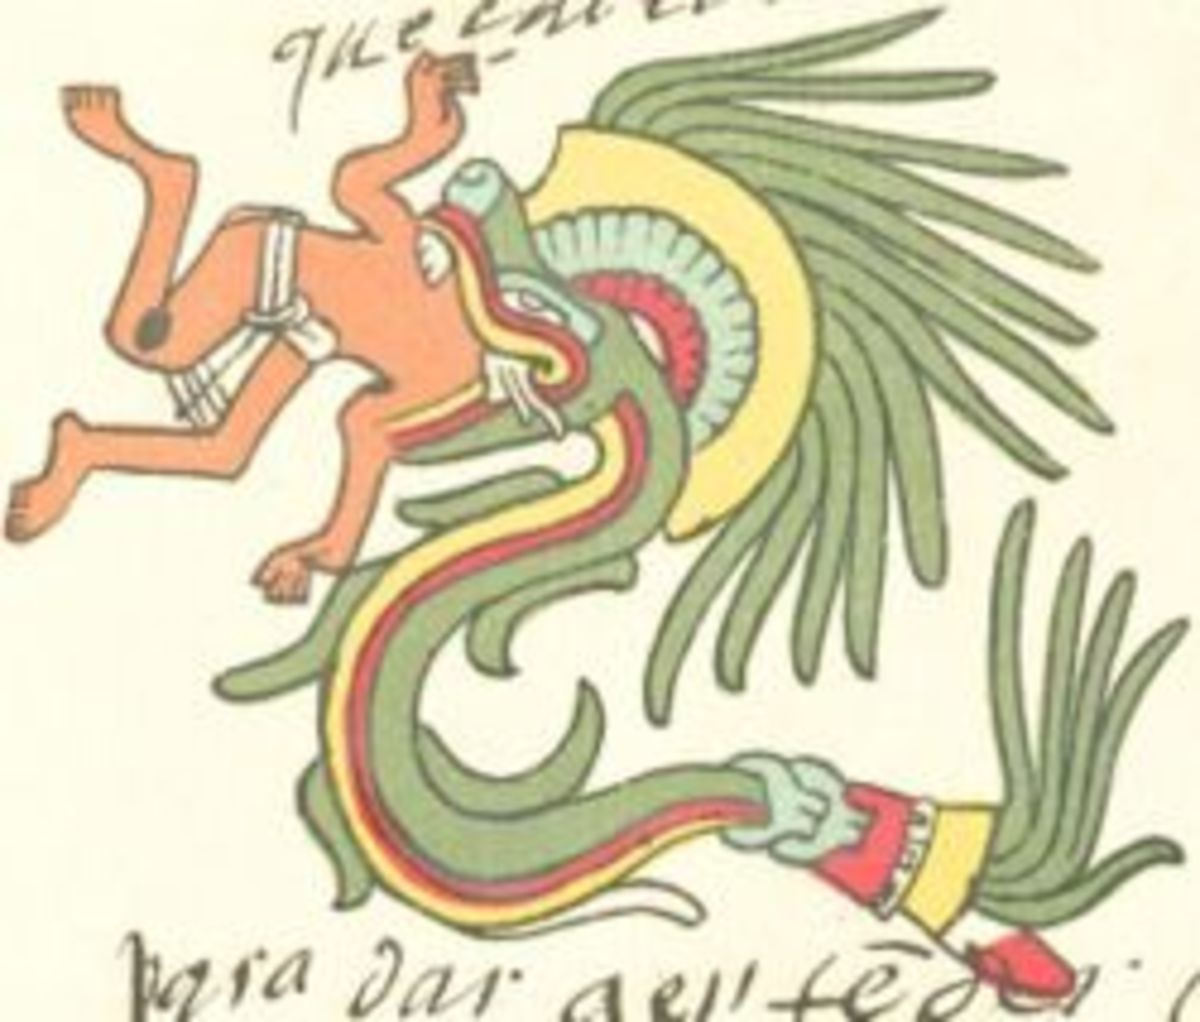 Quetzalcoatl, from the Codex Telleriano-Remensis.